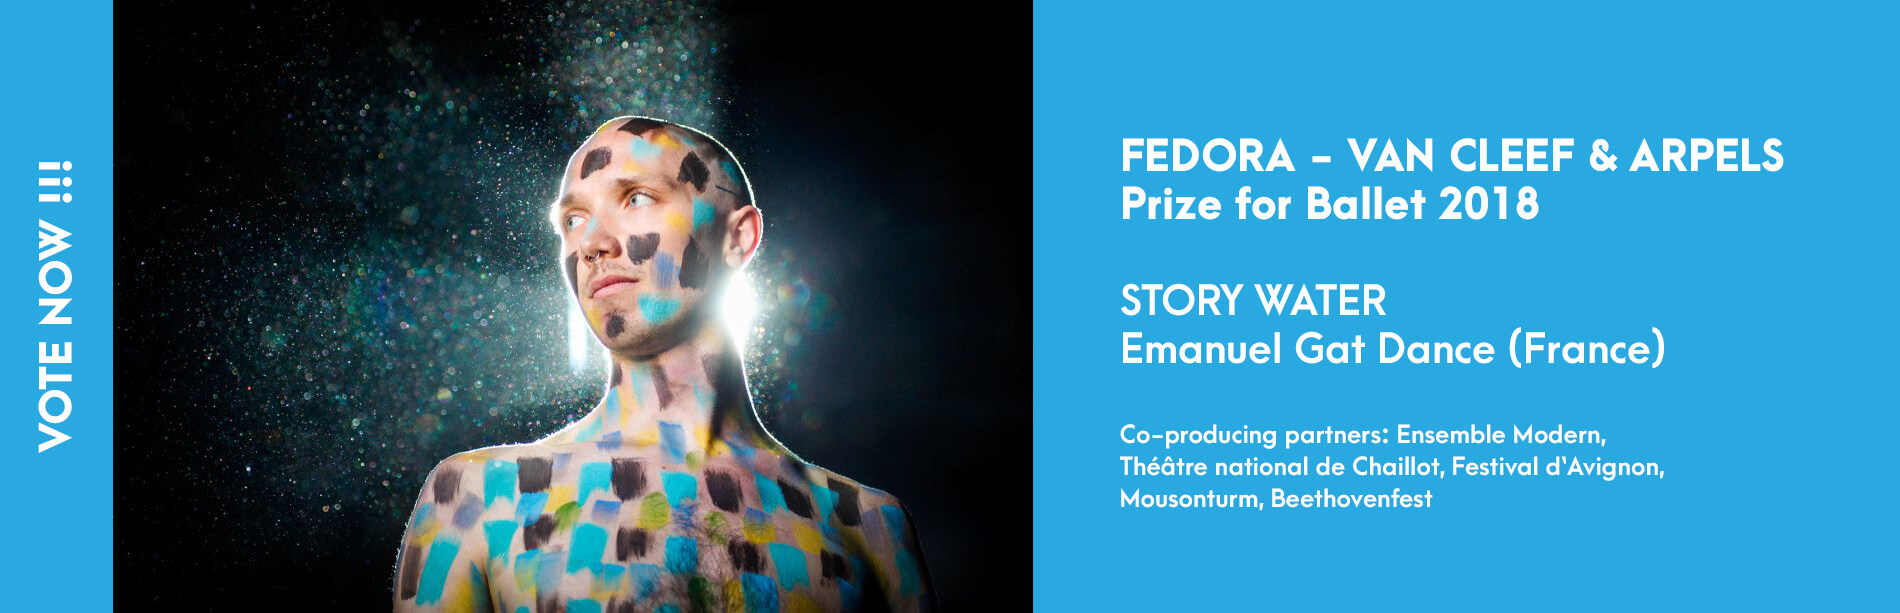 Prize for Ballet 2018 - Story Water